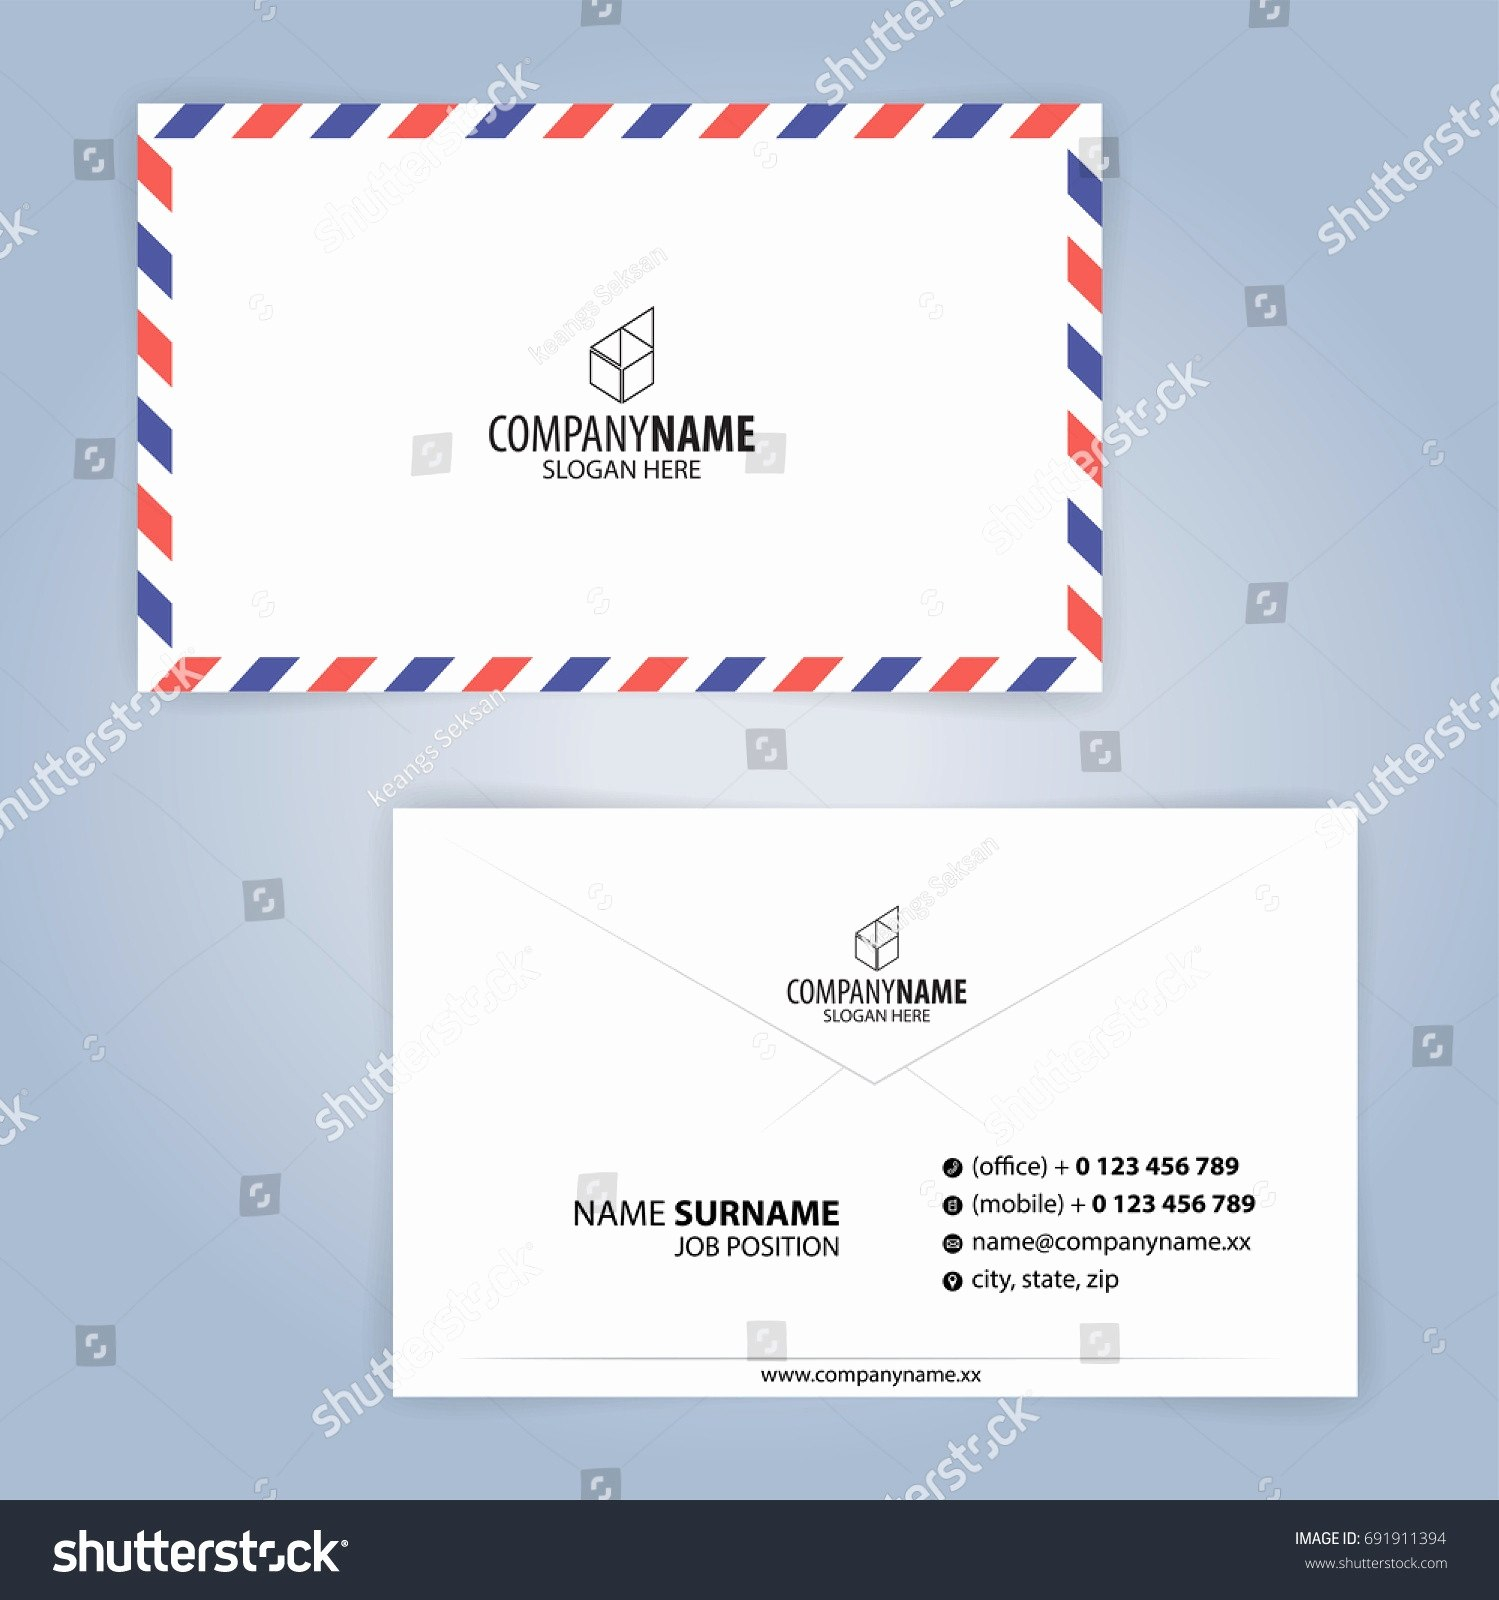 Southworth Business Card Template Lovely Southworth Business Card Intended For Southworth Business Card Template